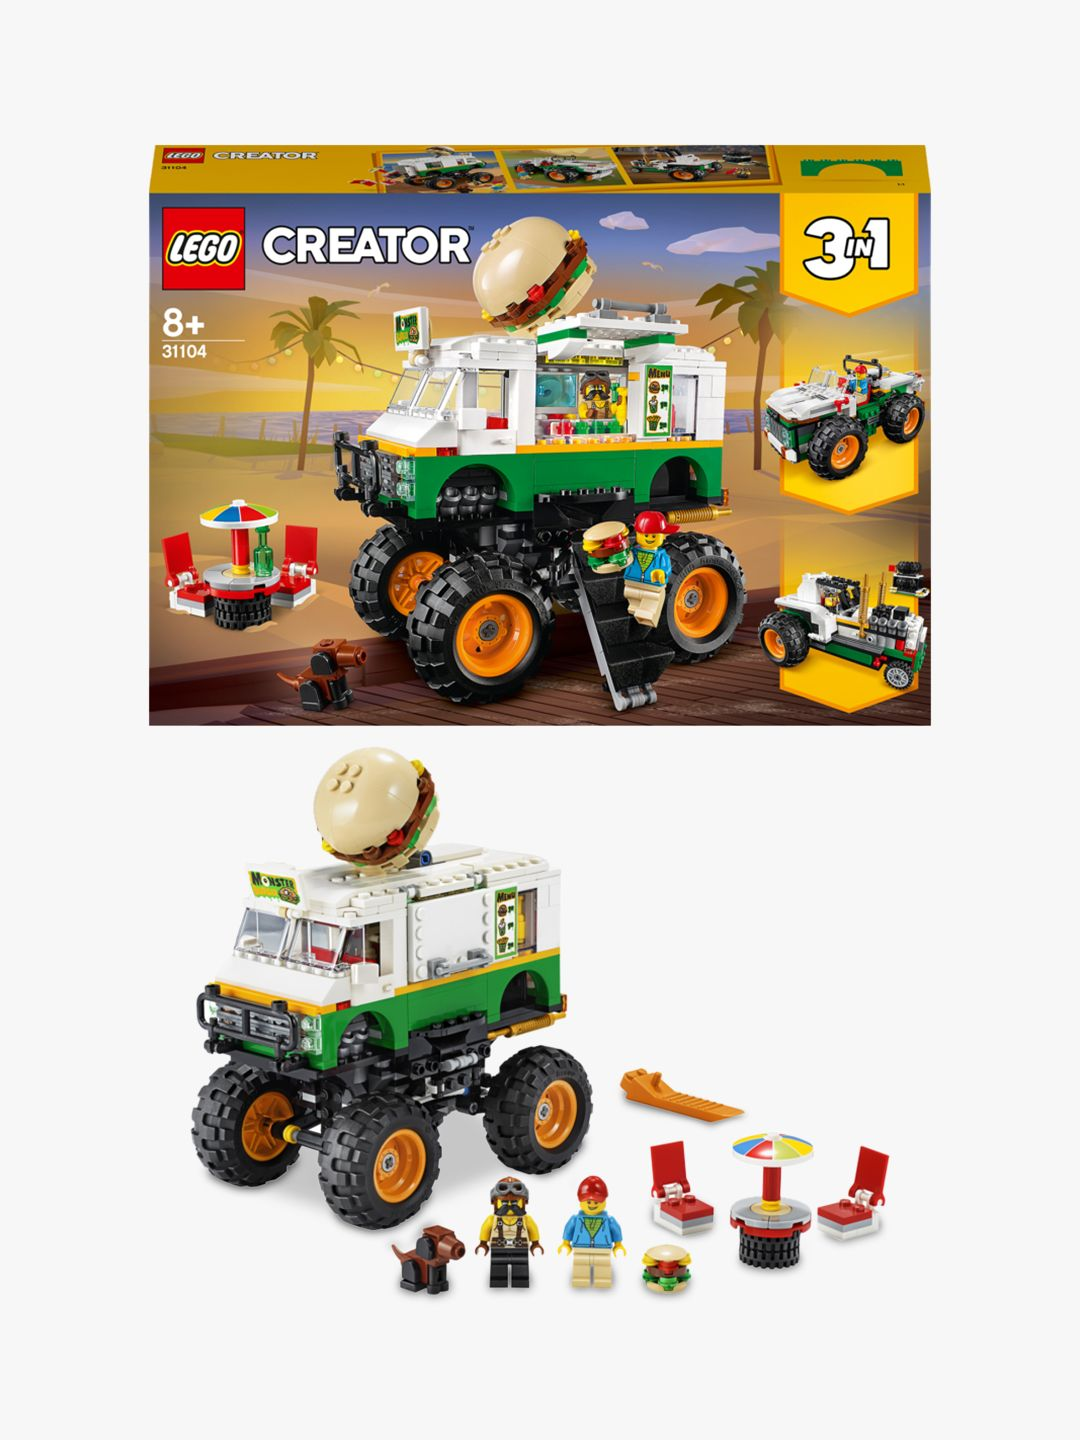 Lego Creator 31104 3 In 1 Monster Burger Truck Offroader Tractor At John Lewis Partners